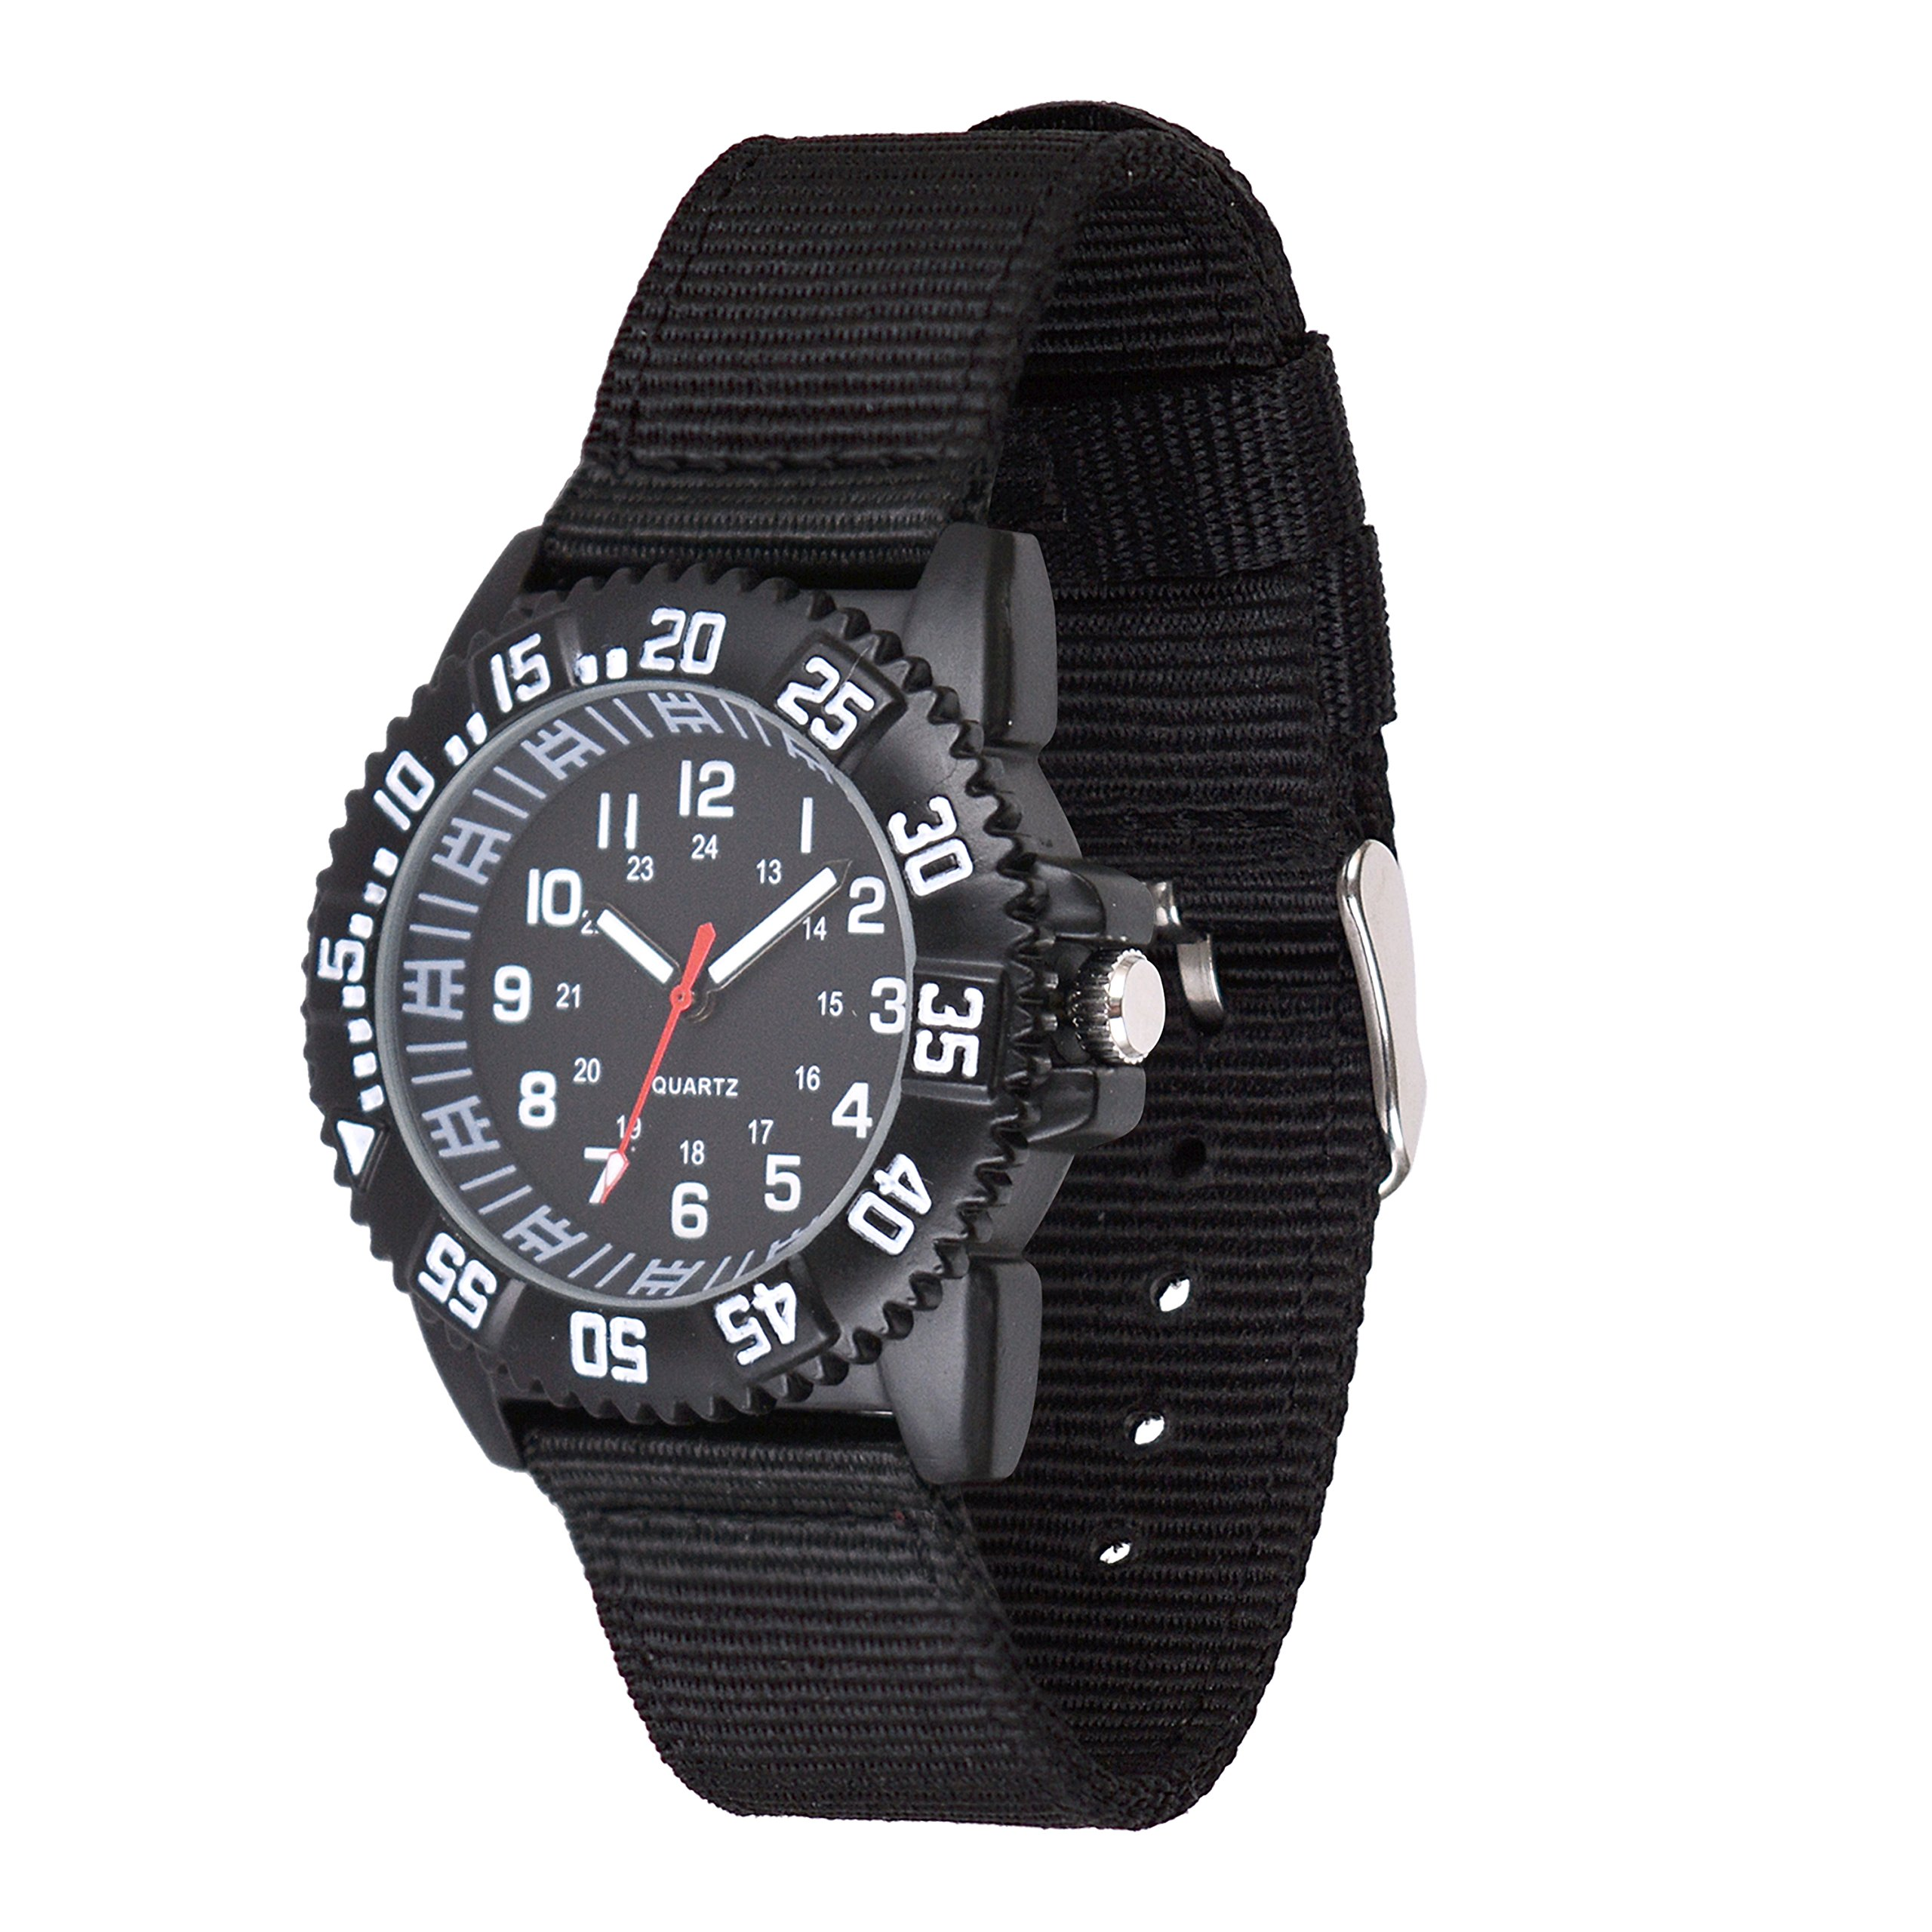 Wolfteeth Analog Watch for Boys Watch Waterproof Black Dial Black Nylon Band 302001